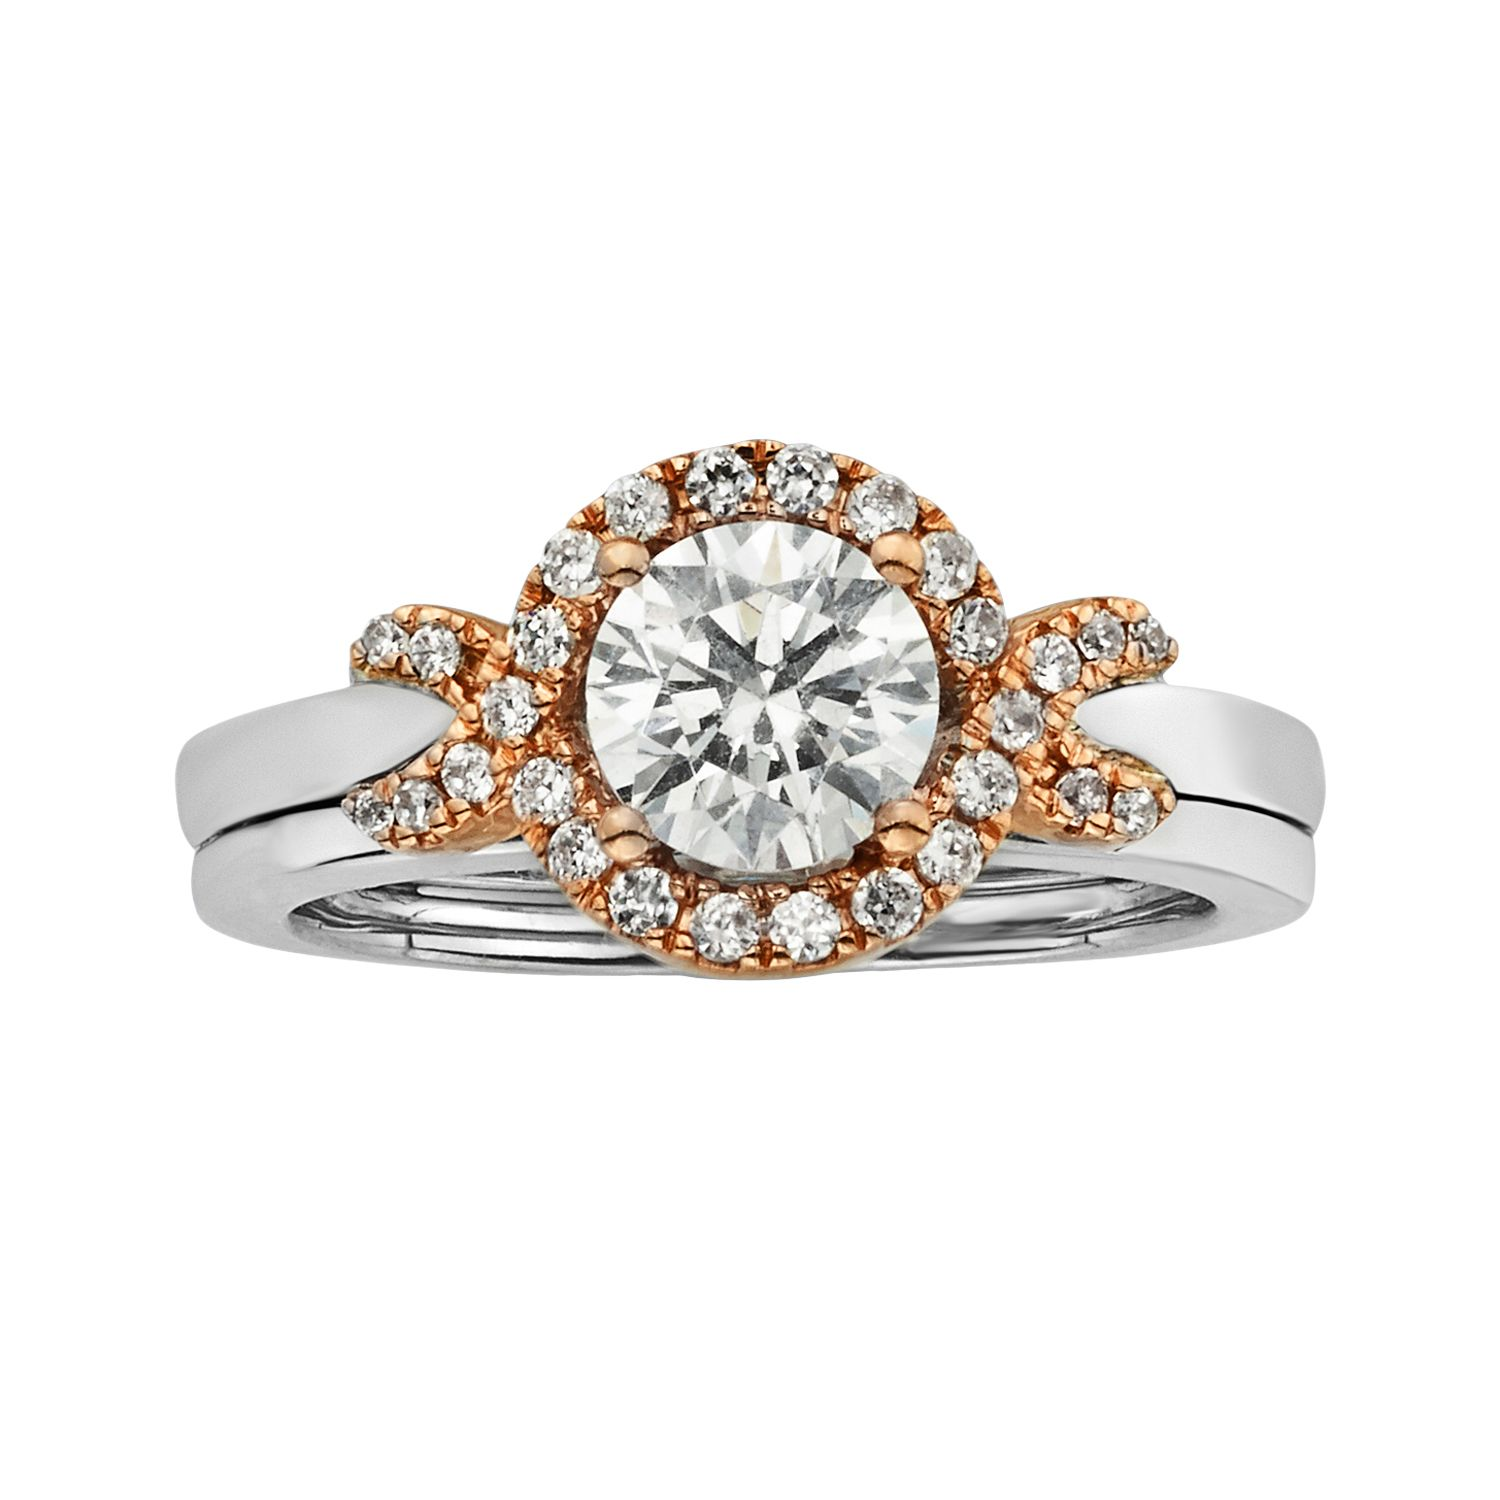 Halo Wedding Ring Sets 25 Awesome Round Cut IGL Certified